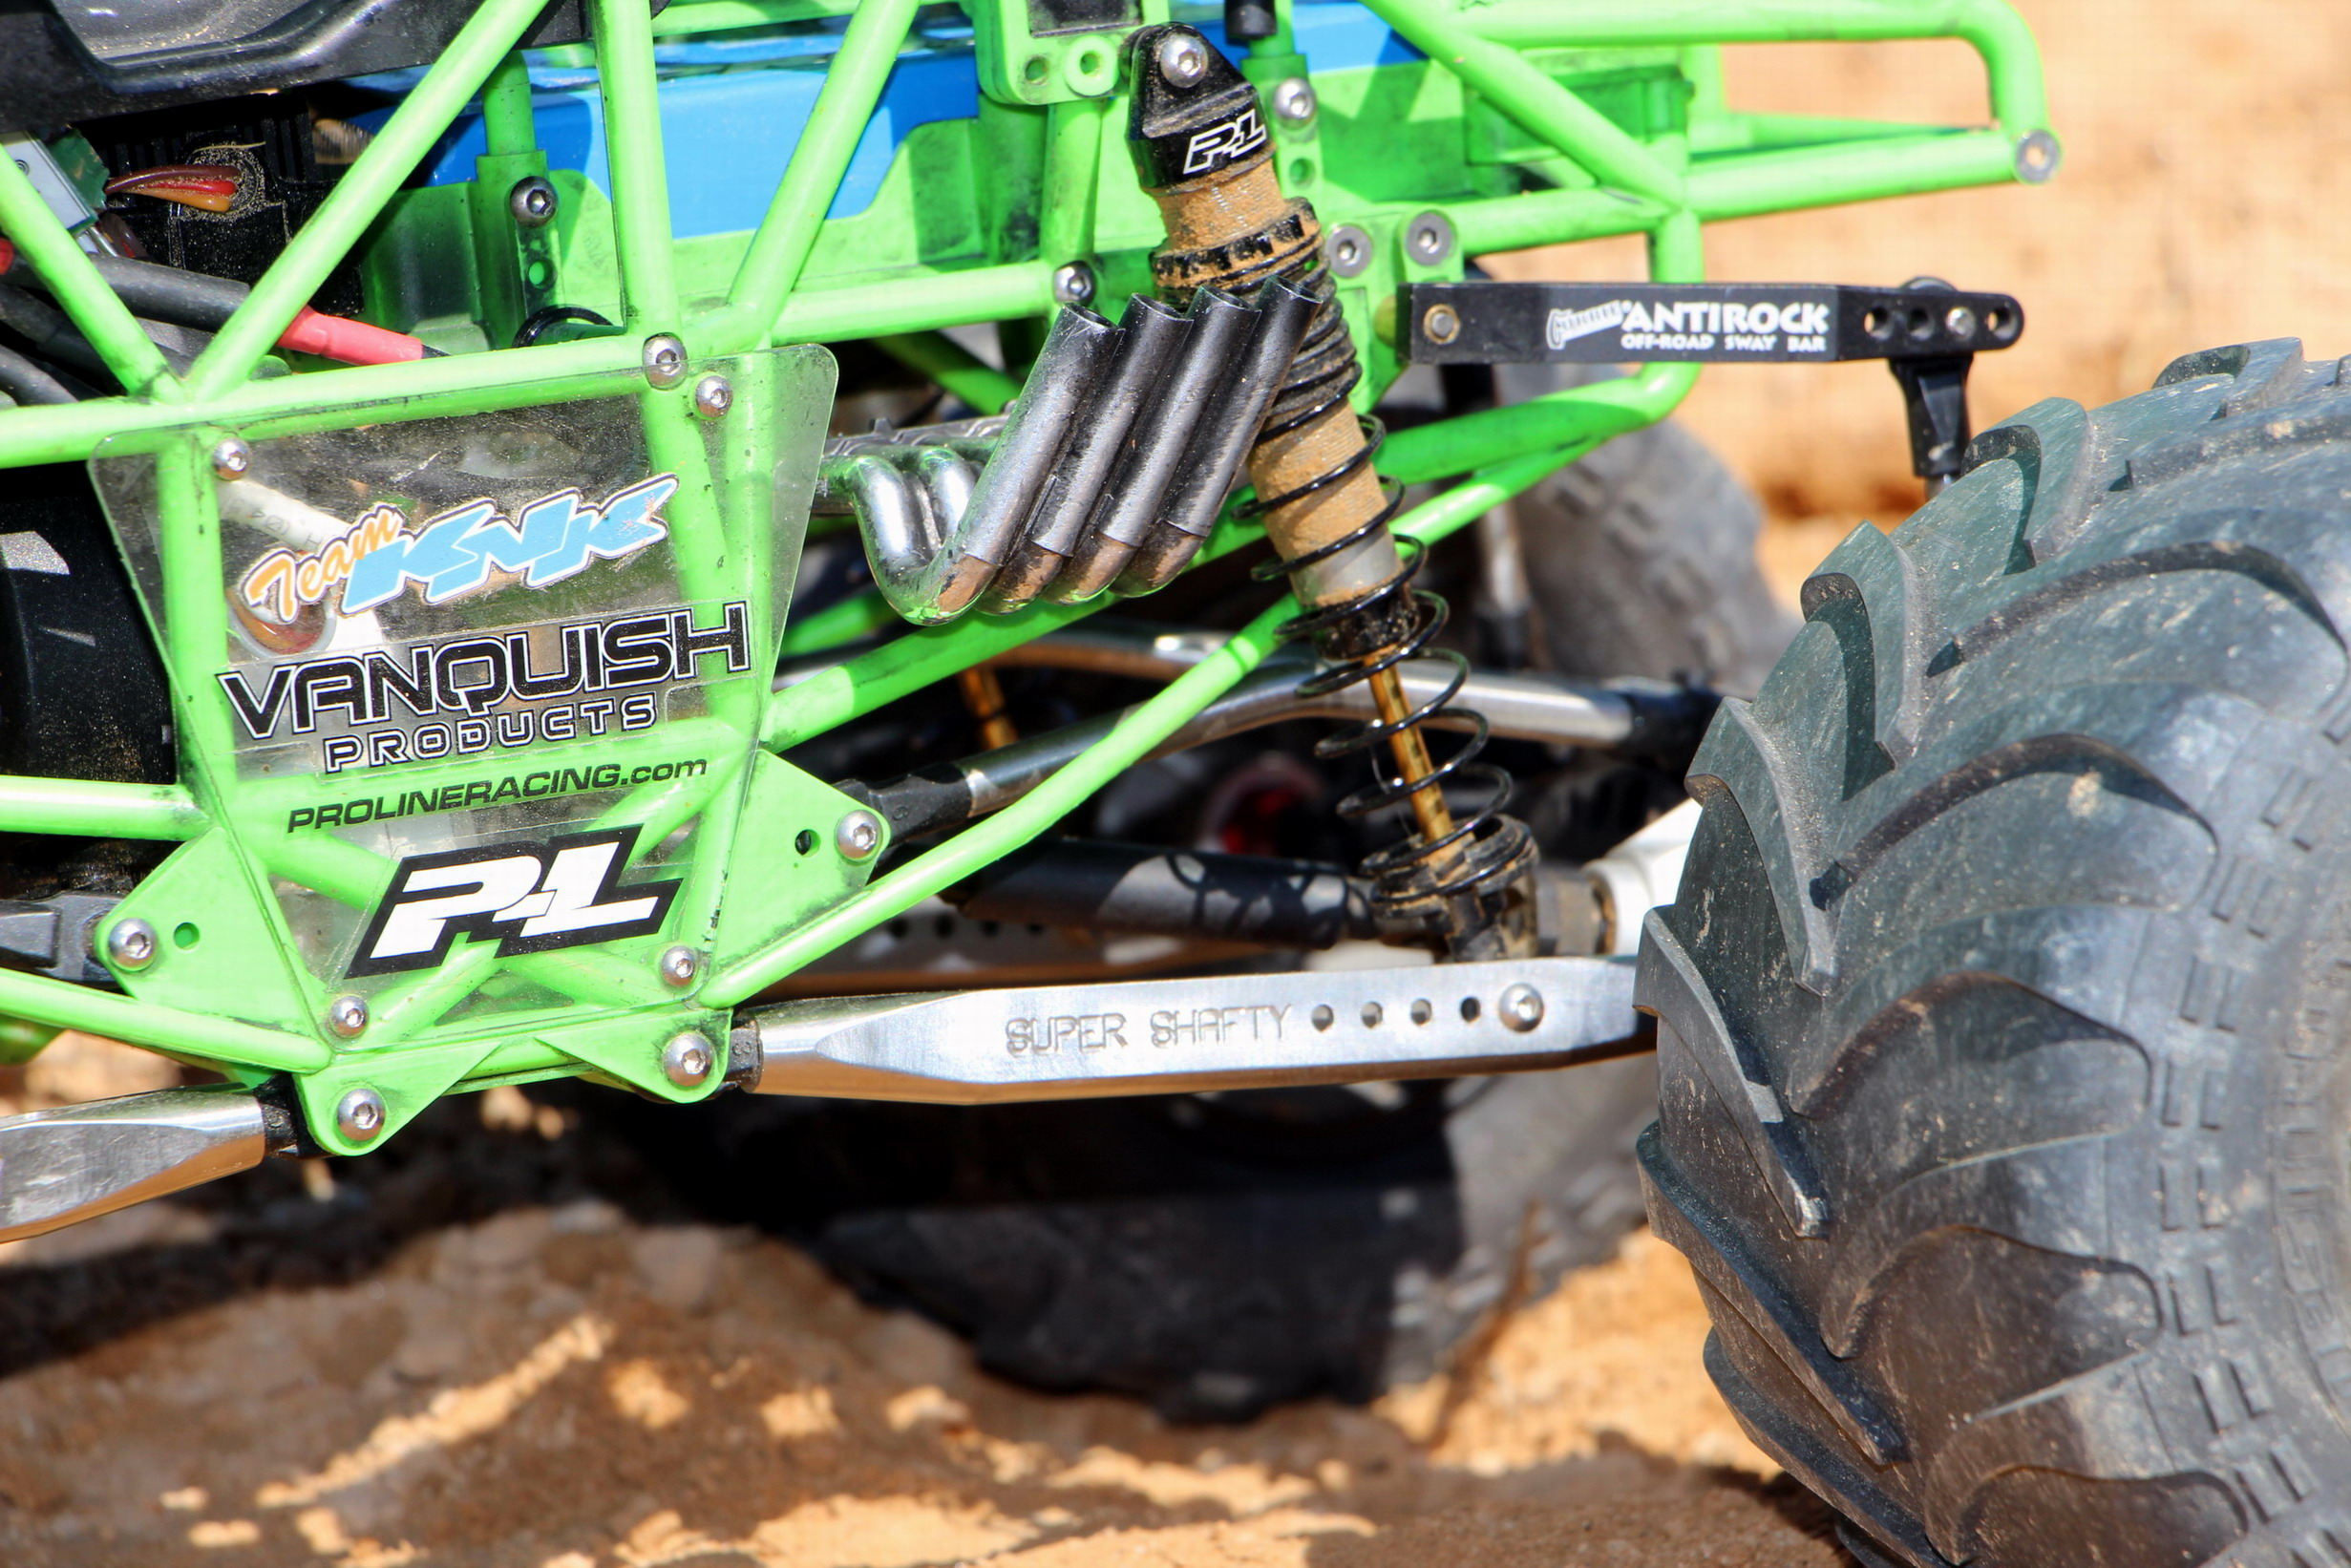 Pro Line Puts The Quot Digger Quot In Axial Racings Smt10 Grave